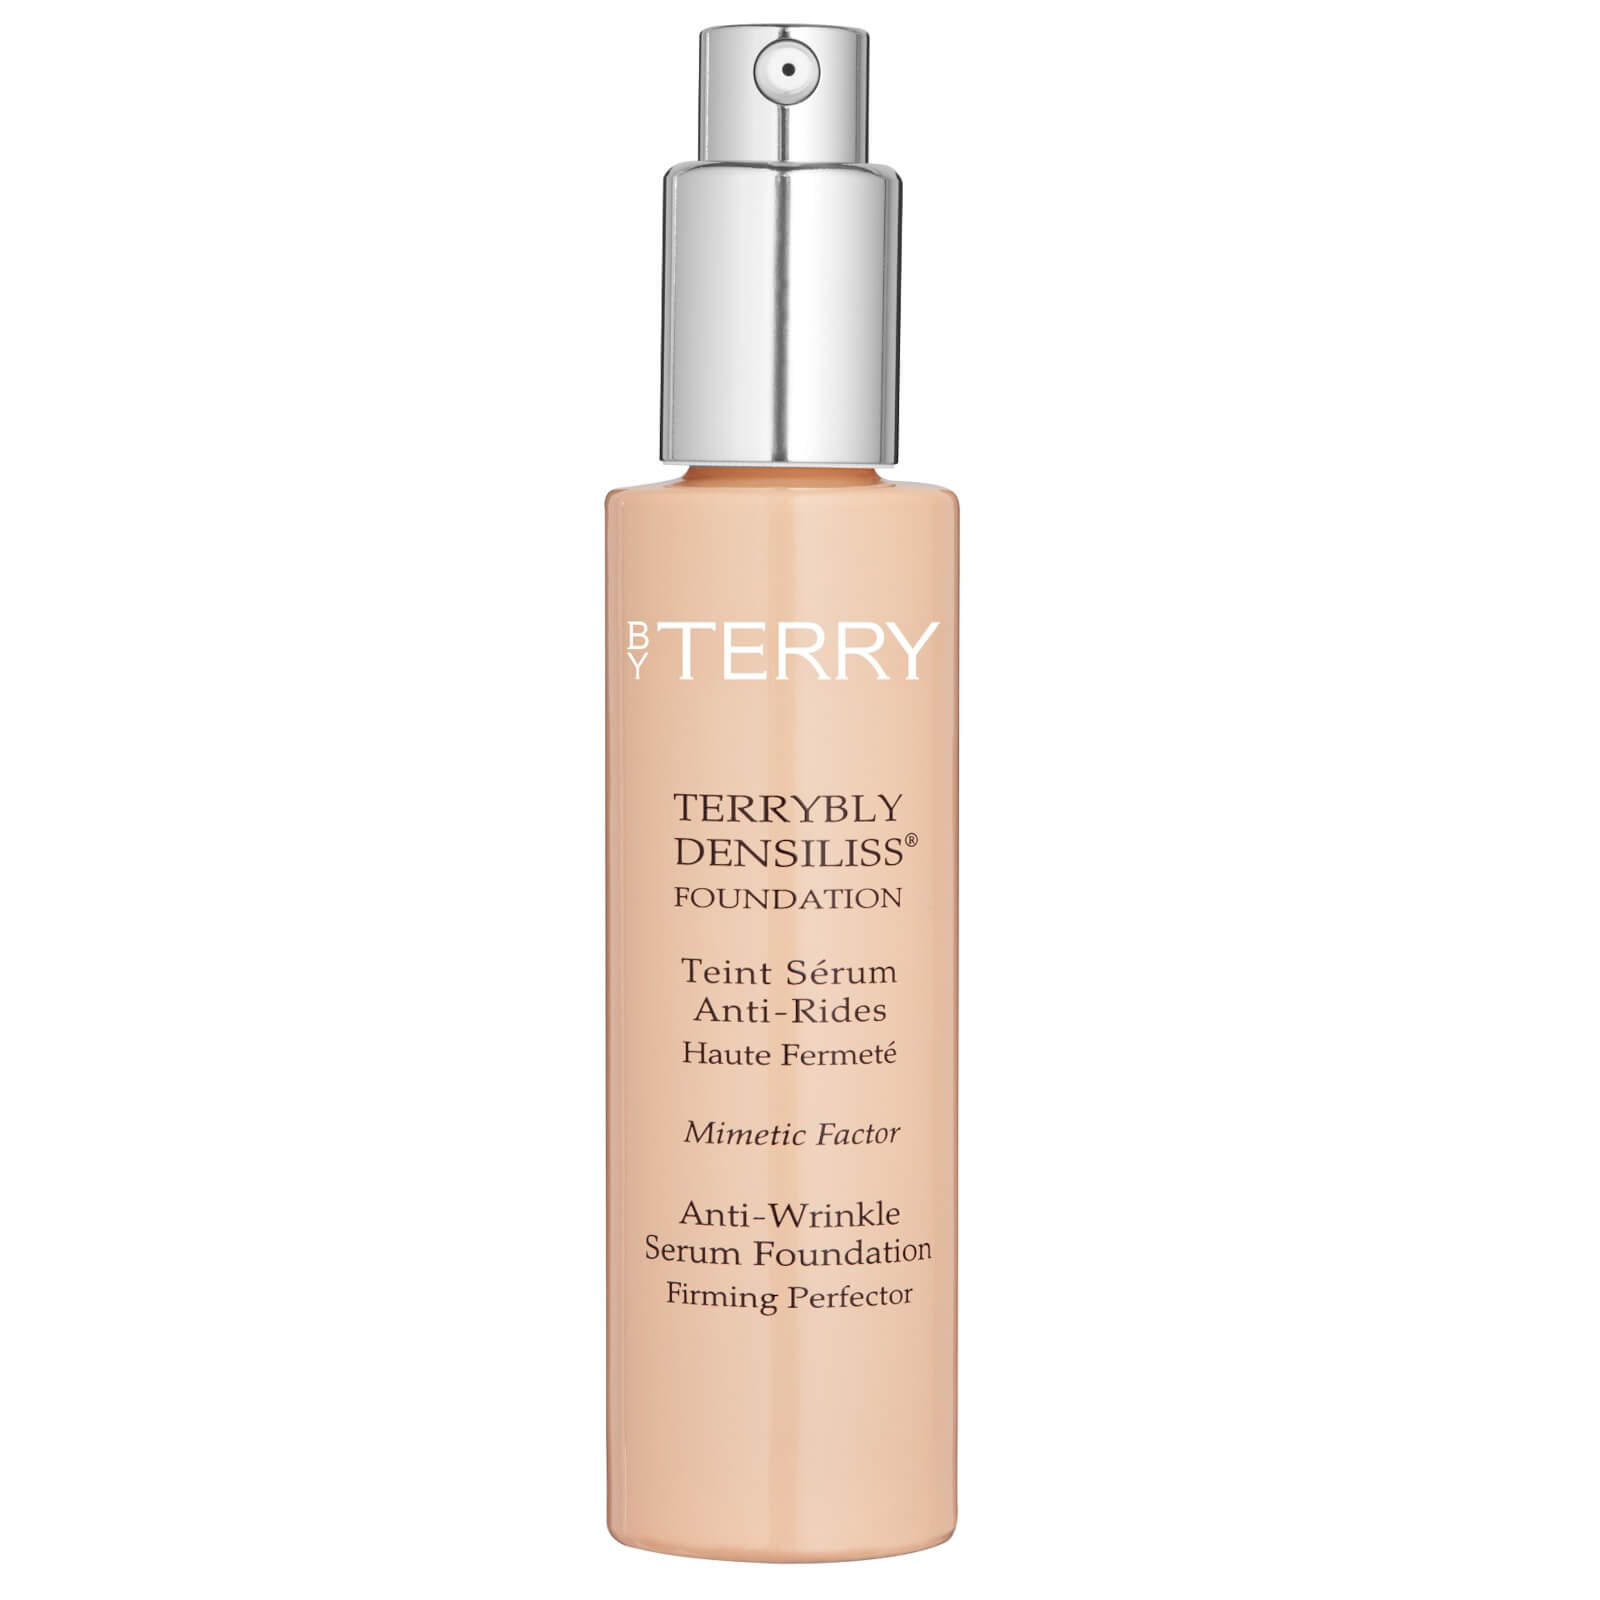 By Terry Terrybly Densiliss Foundation 30ml (Various Shades) - 7.5. Honey Gland